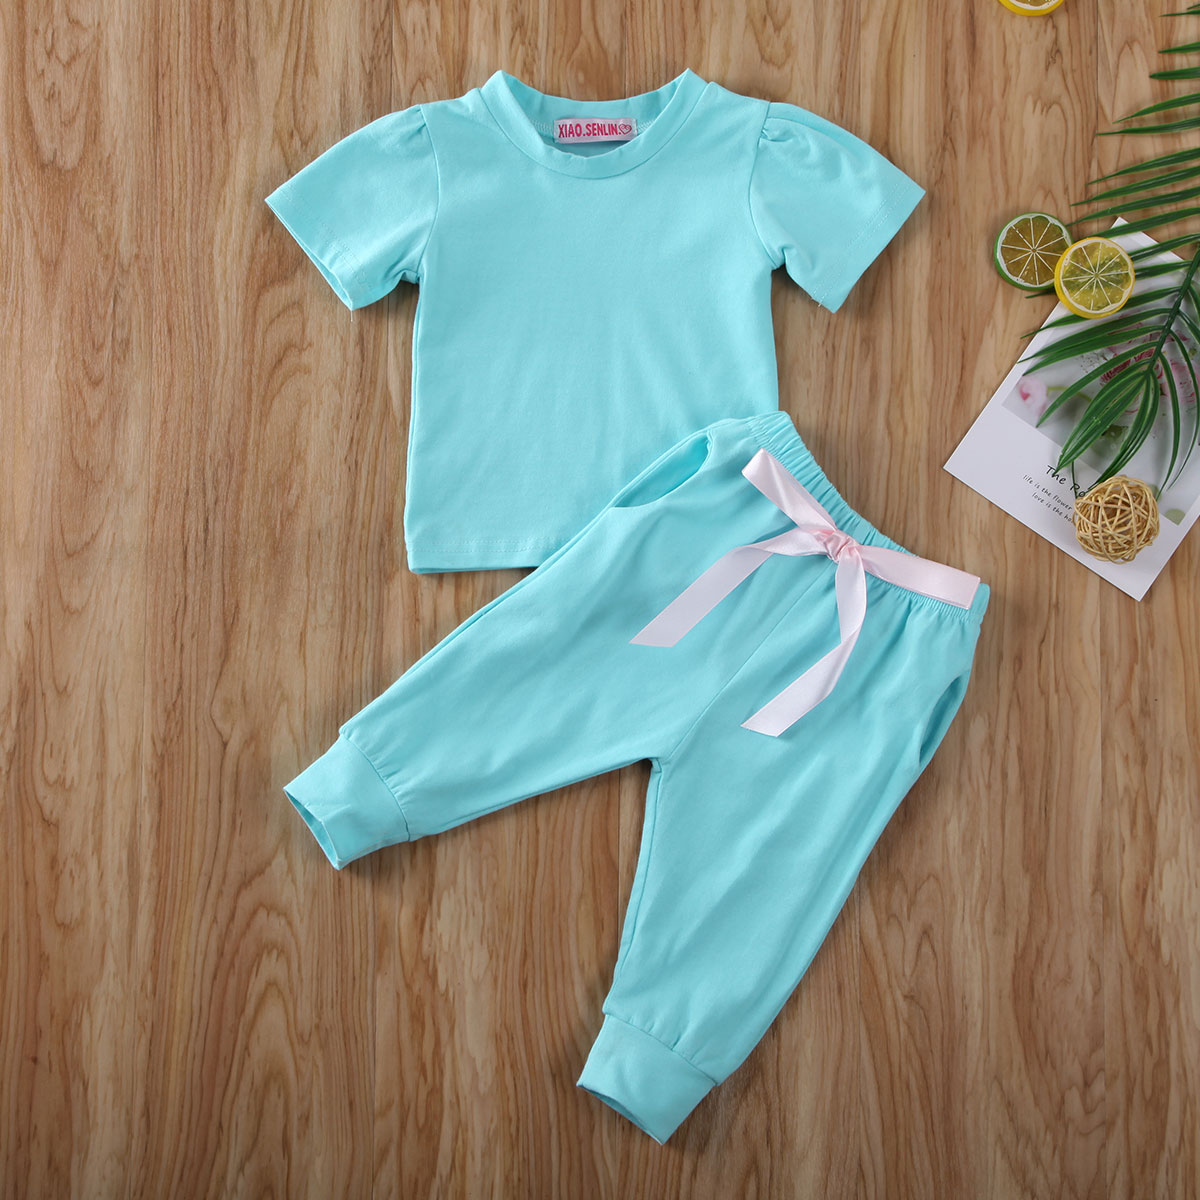 Pudcoco Toddler Baby Girl Clothes Solid Color Short Sleeve T-Shirt Tops Bowknot Long Pants 2Pcs Outfits Cotton Clothes Tracksuit